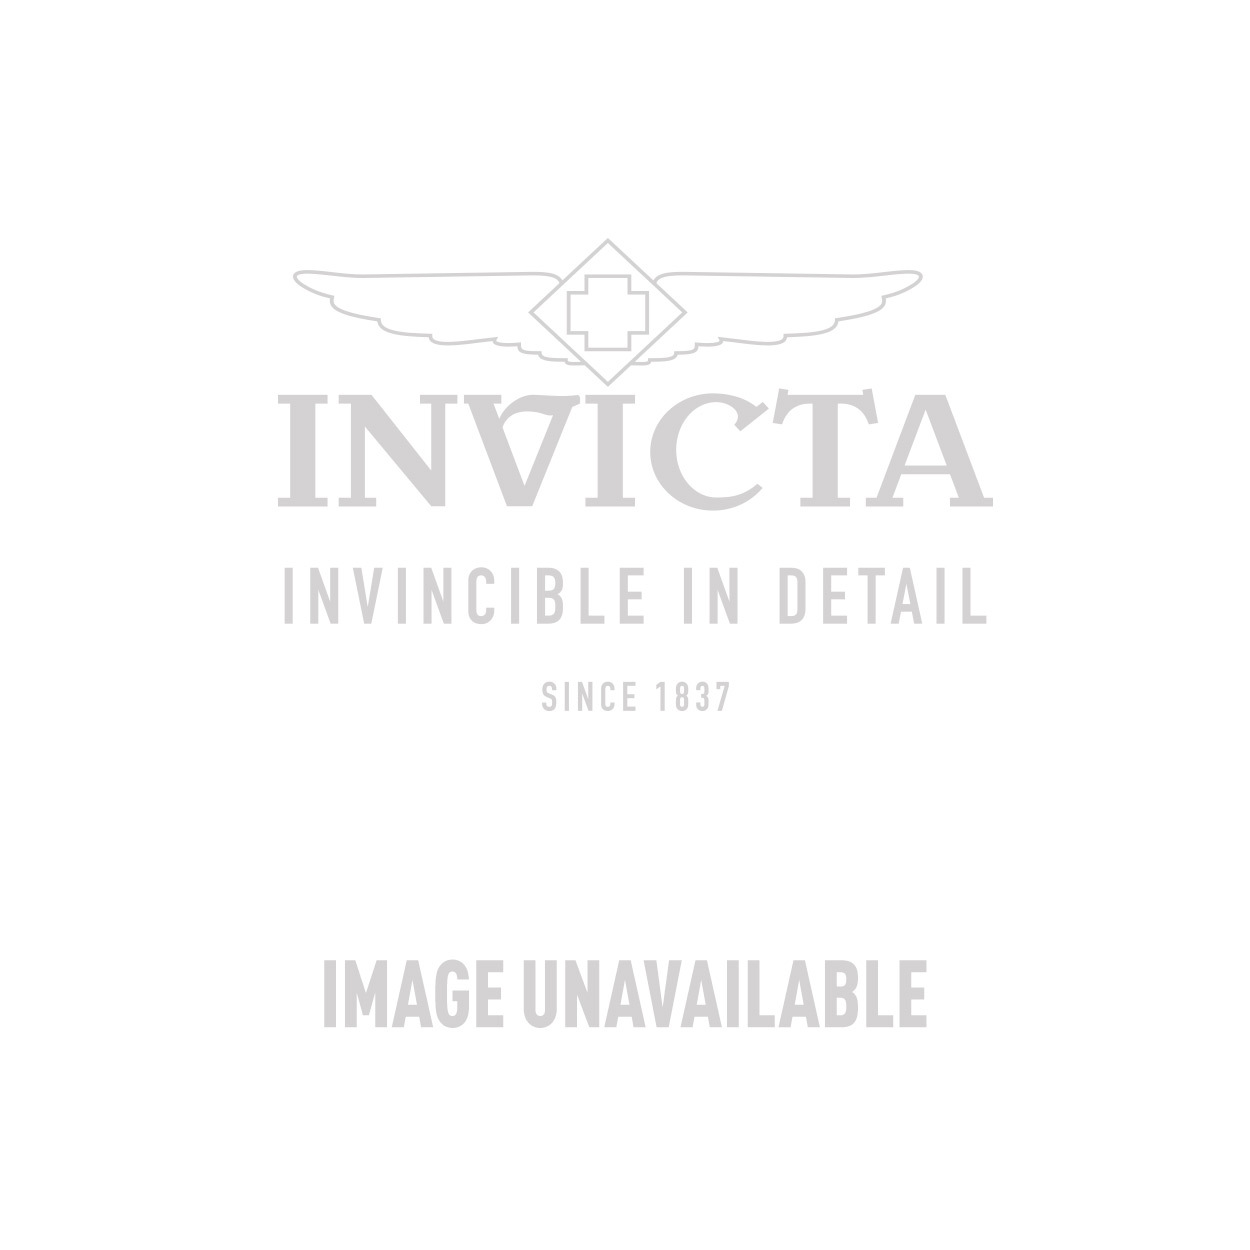 Invicta Subaqua Swiss Made Quartz Watch - Stainless Steel case Stainless Steel band - Model 17612